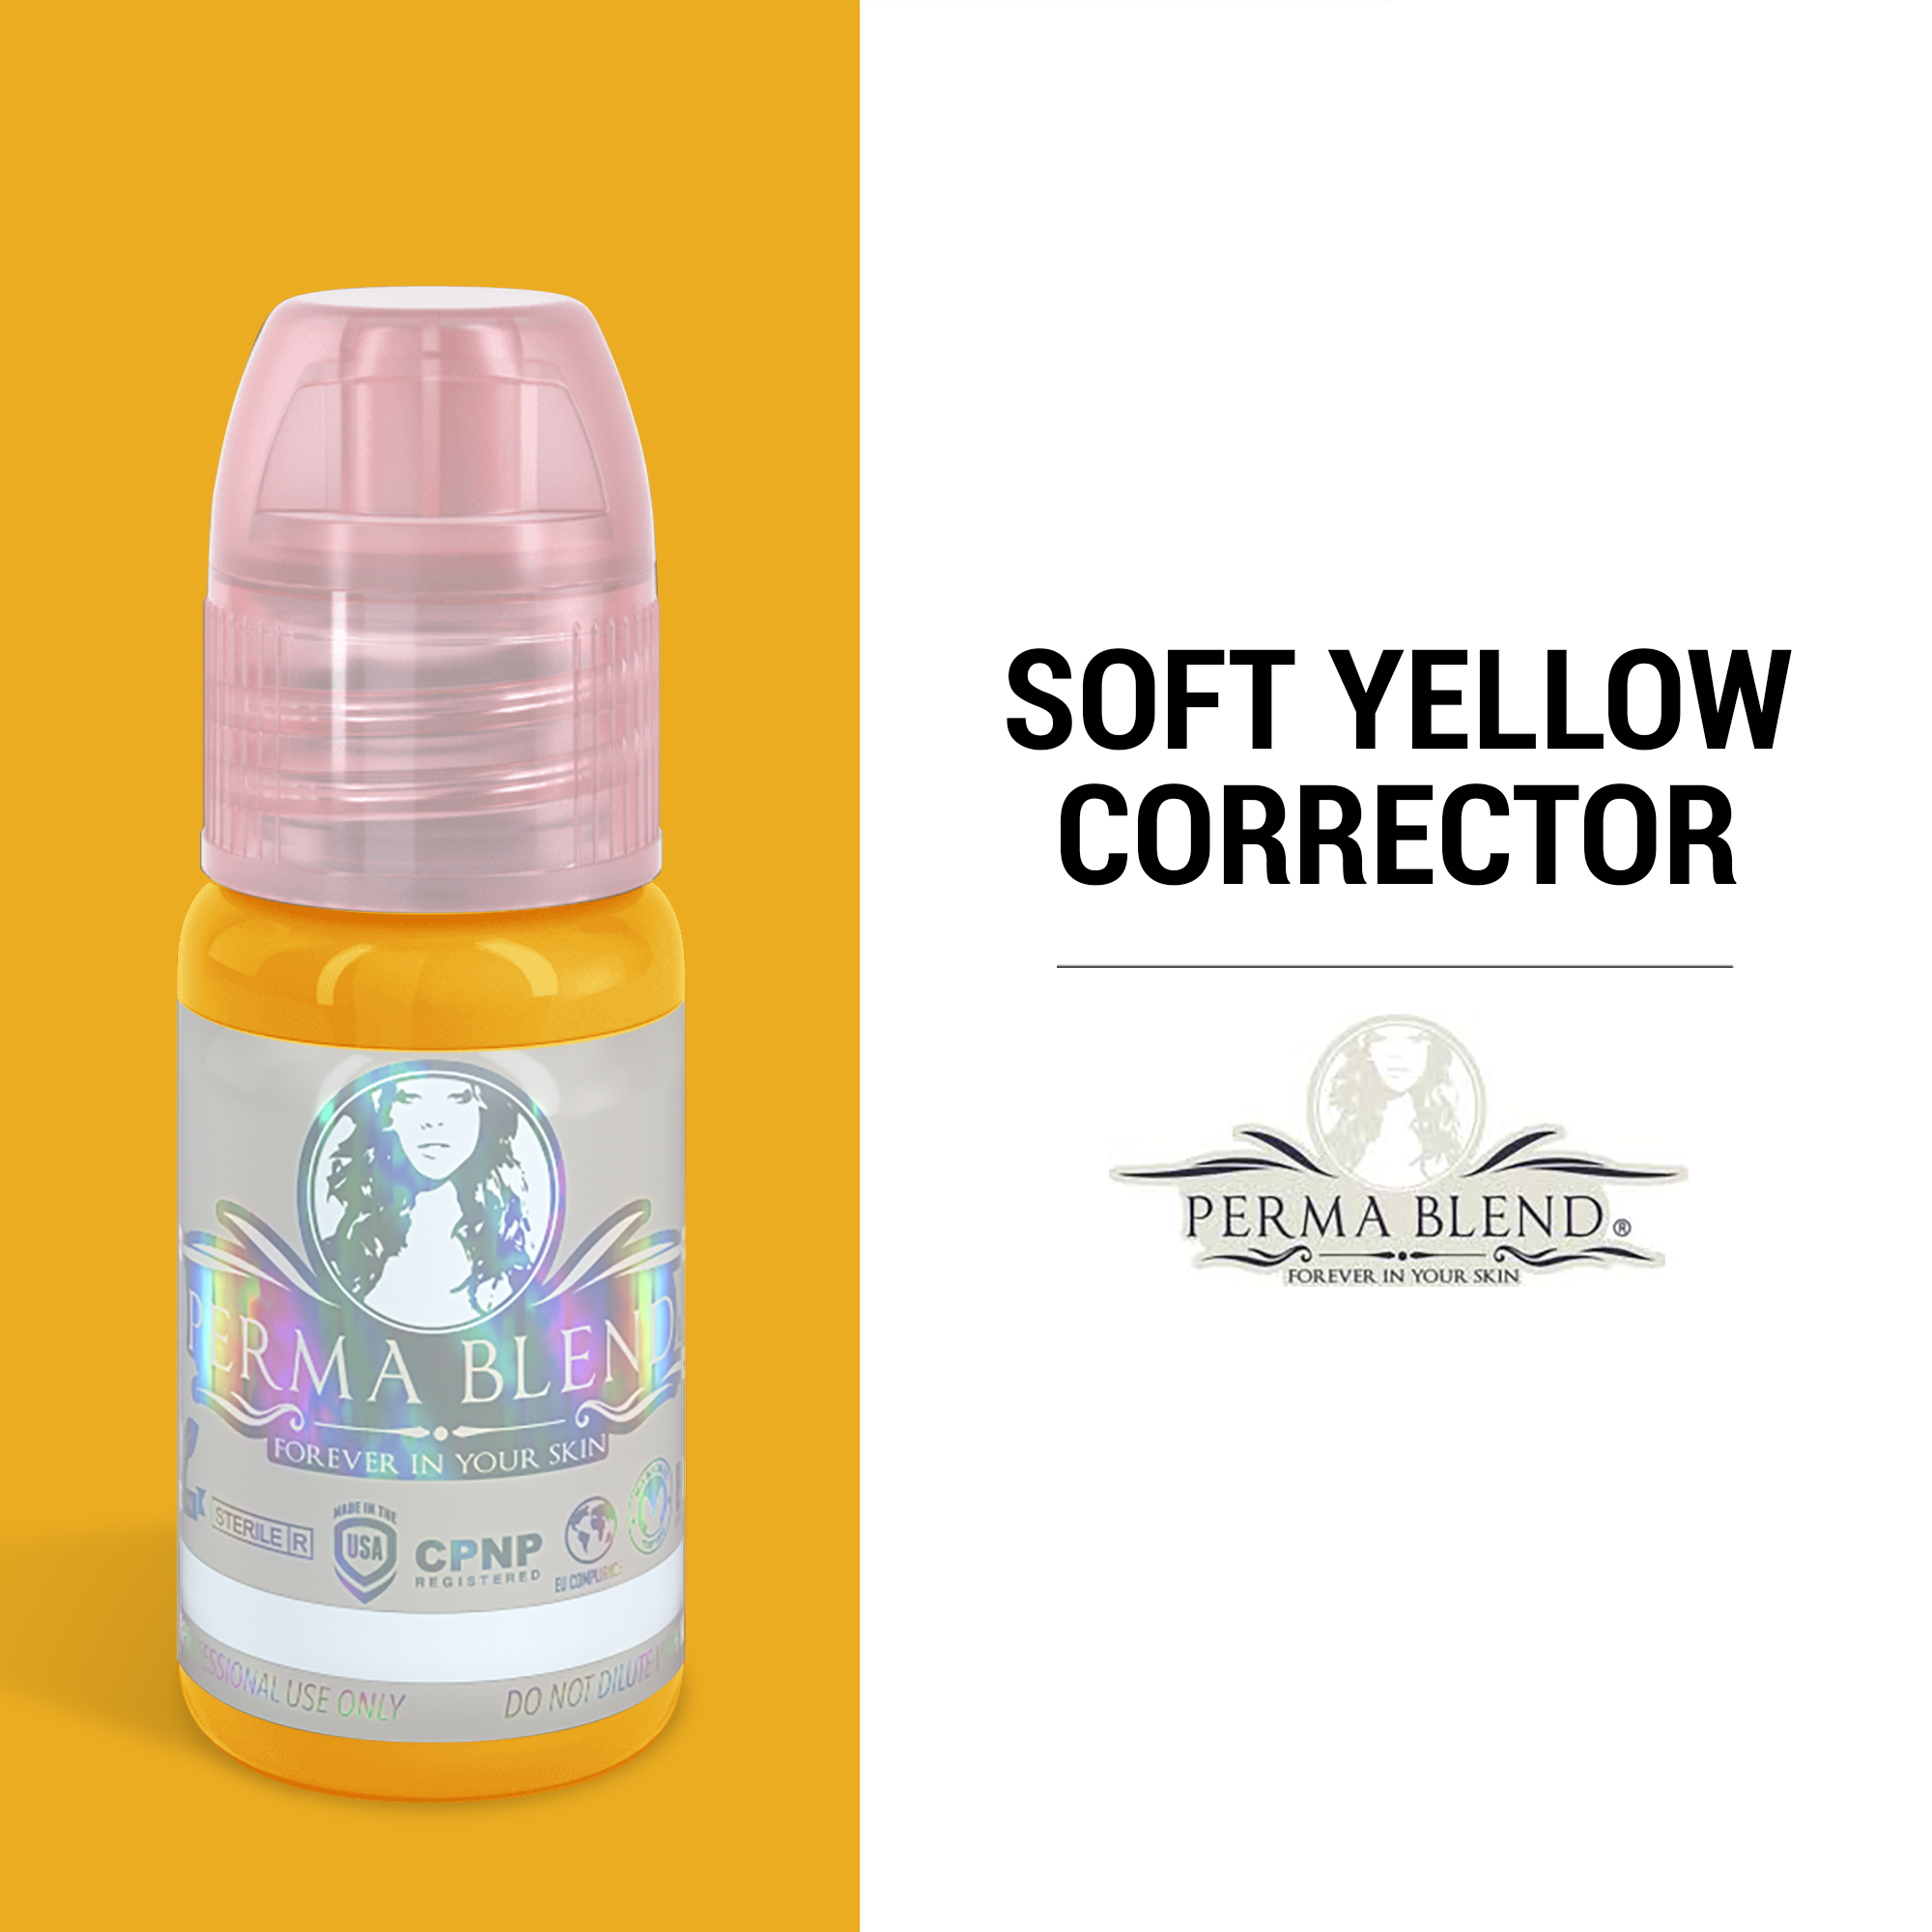 Perma Blend Soft Yellow Corrector